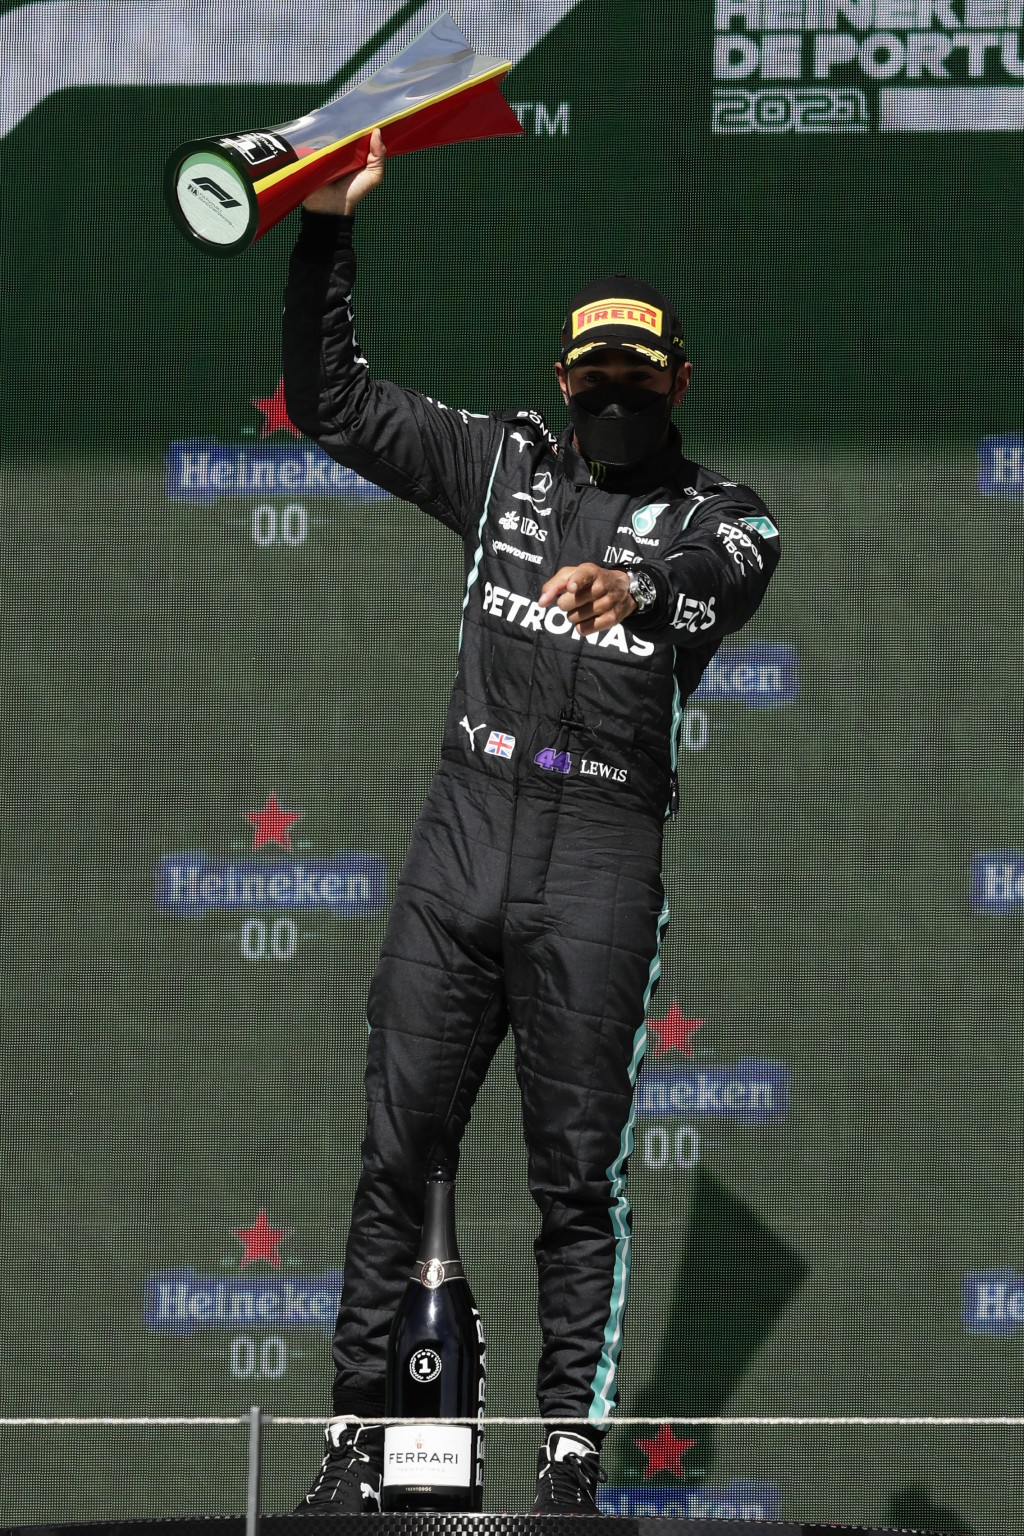 Mercedes driver Lewis Hamilton of Britain celebrates on the podium after winning the Portugal Formula One Grand Prix at the Algarve International Circ...